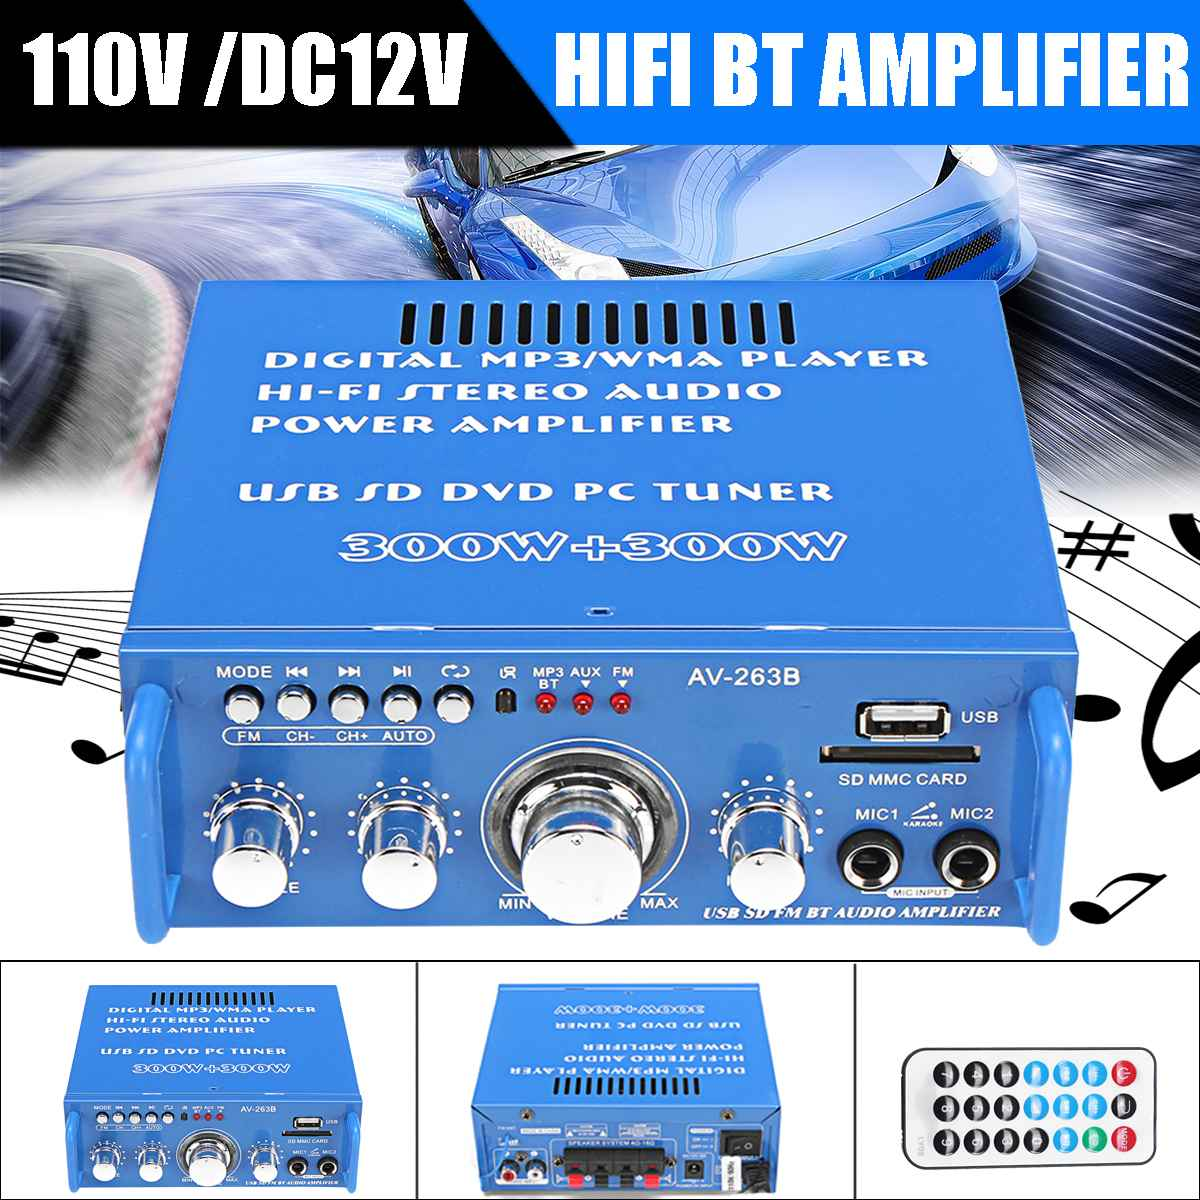 300W+300W 110V/12V Home Audio Power Amplifier HIFI Stereo 2 CH Digital Bluetooth Mini Amplificador FM MP3 Music Player